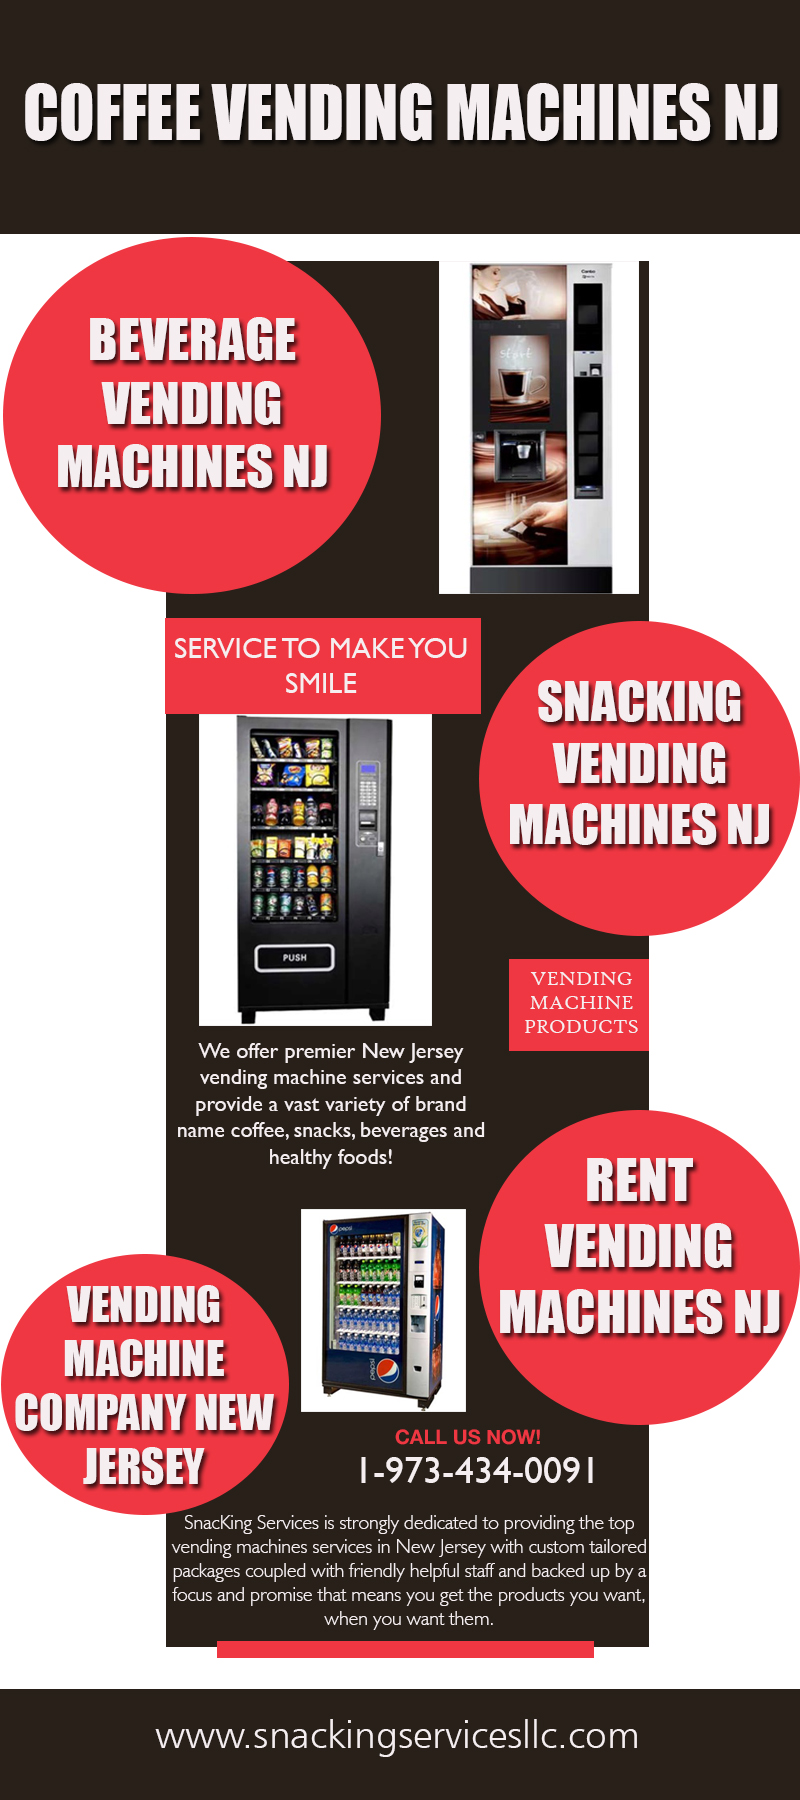 vending services NJ